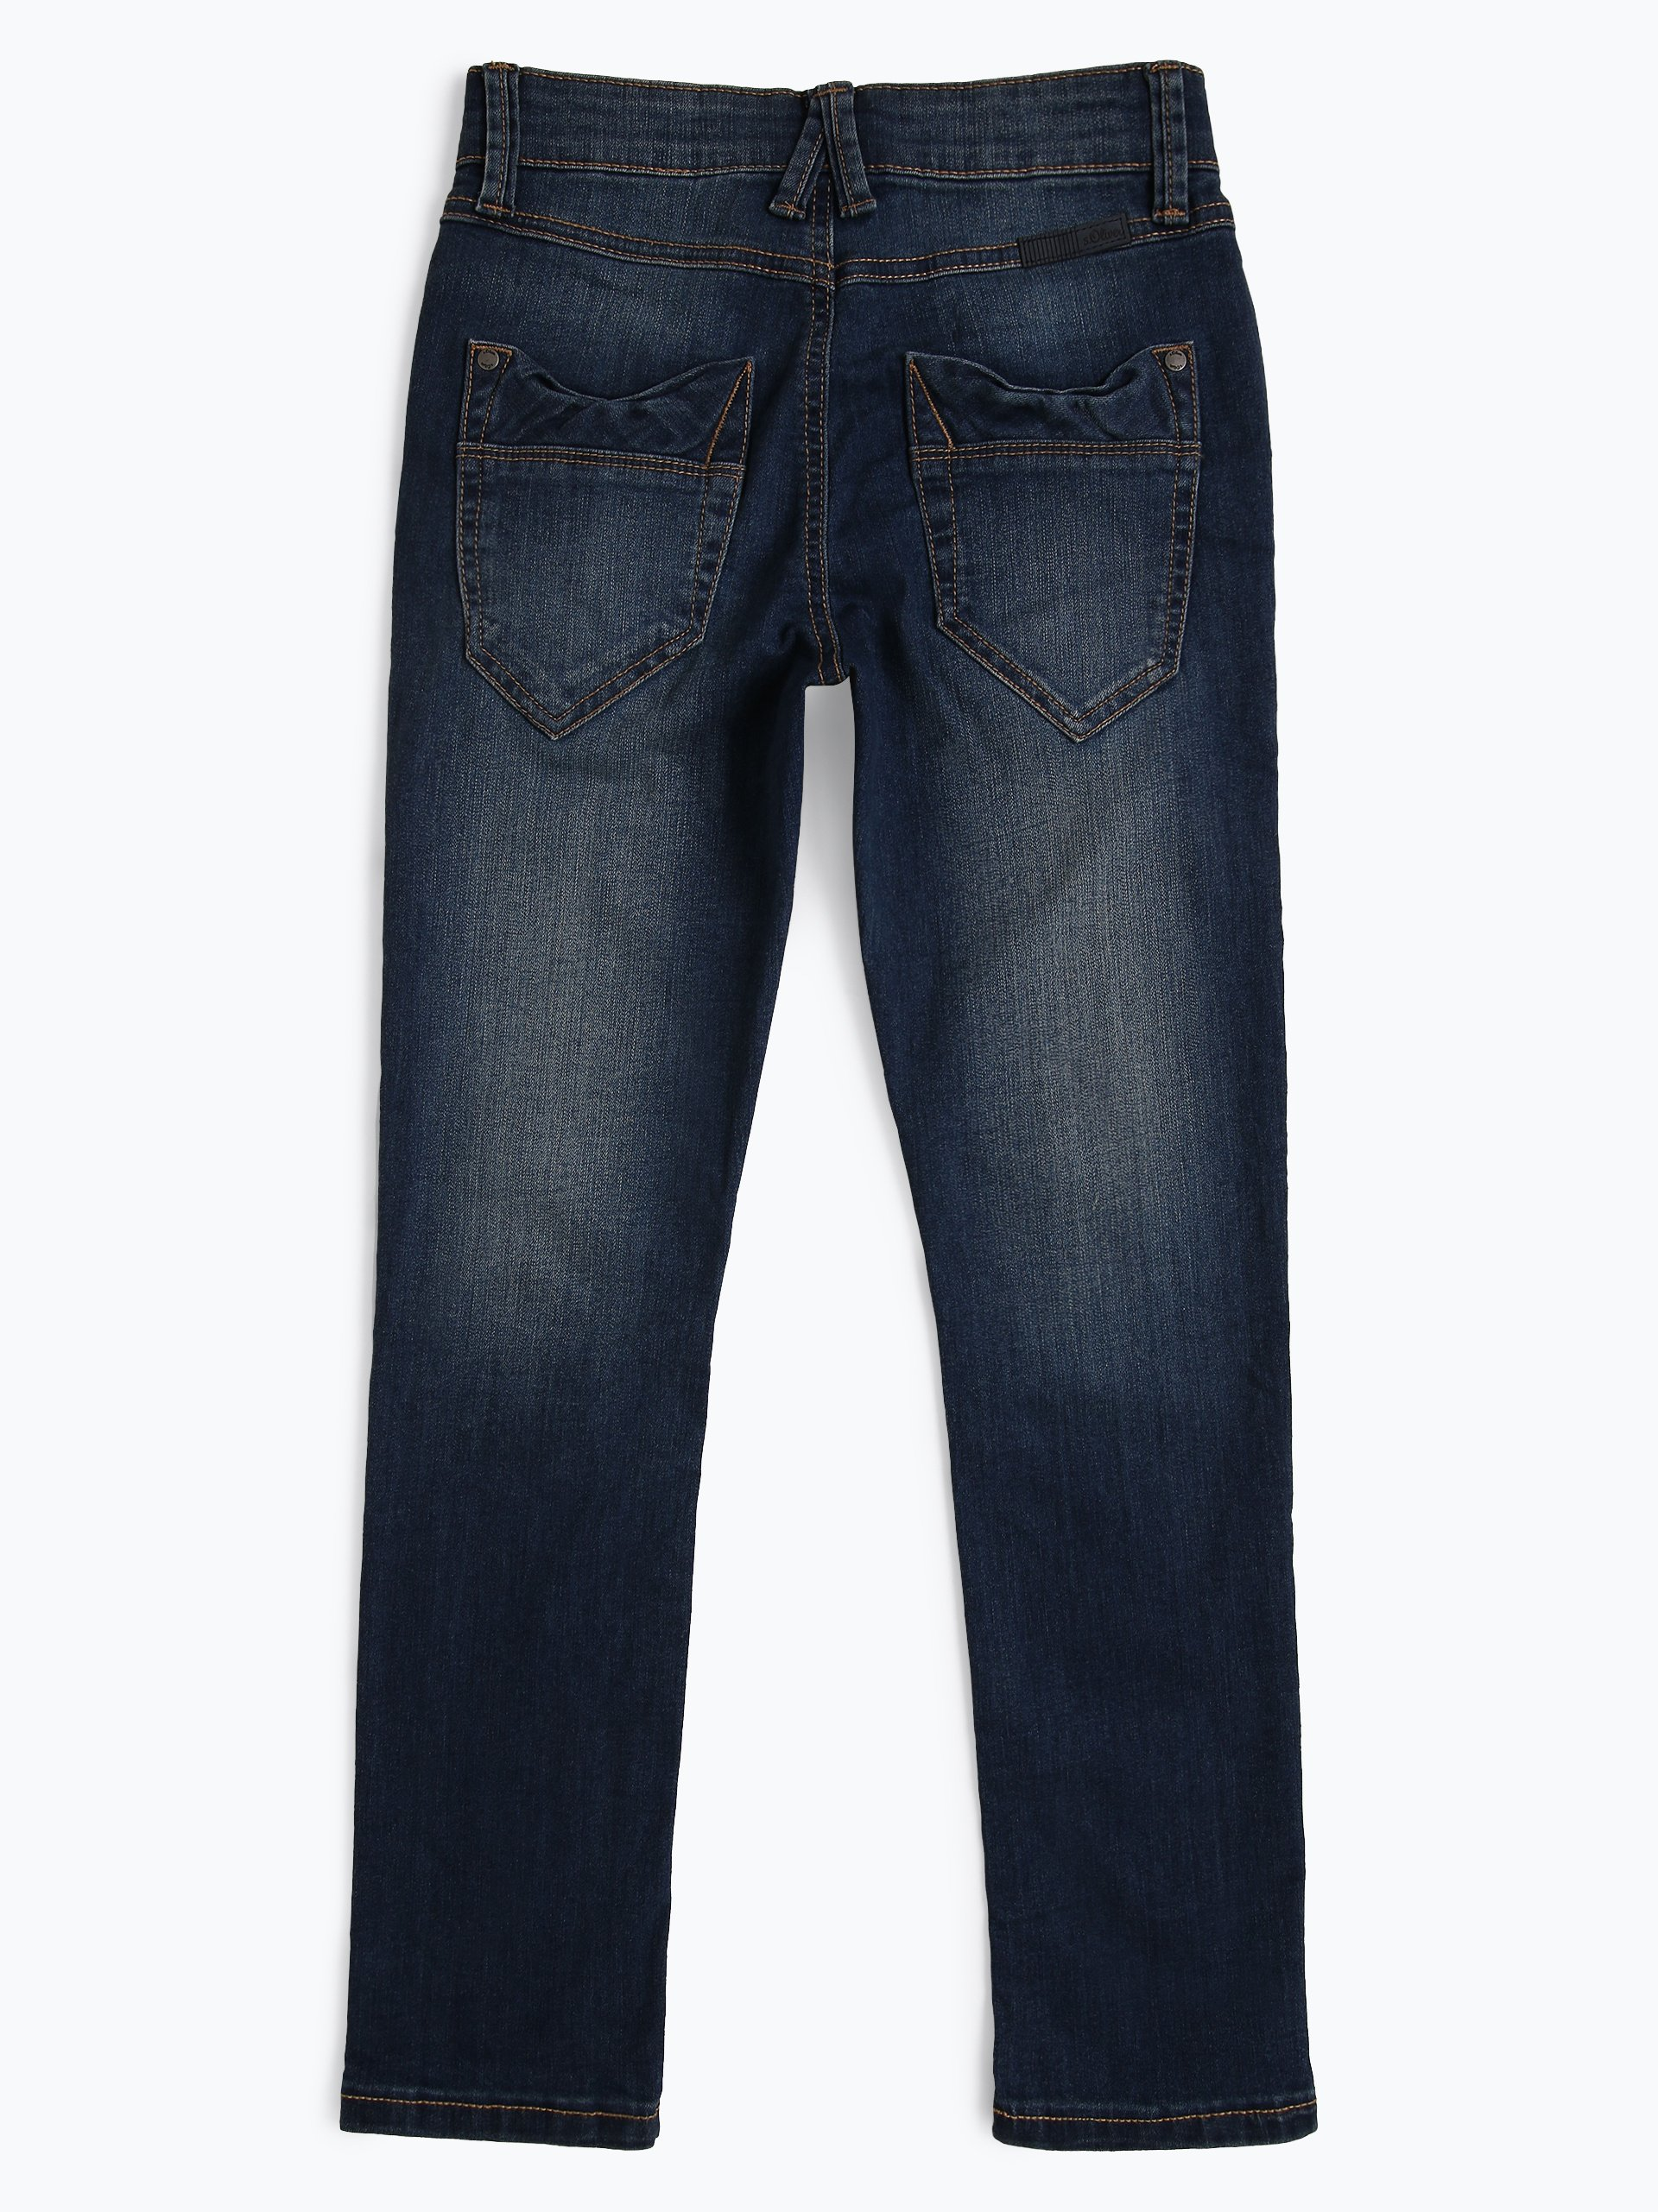 s.Oliver Casual Jungen Jeans Skinny Fit - Seattle